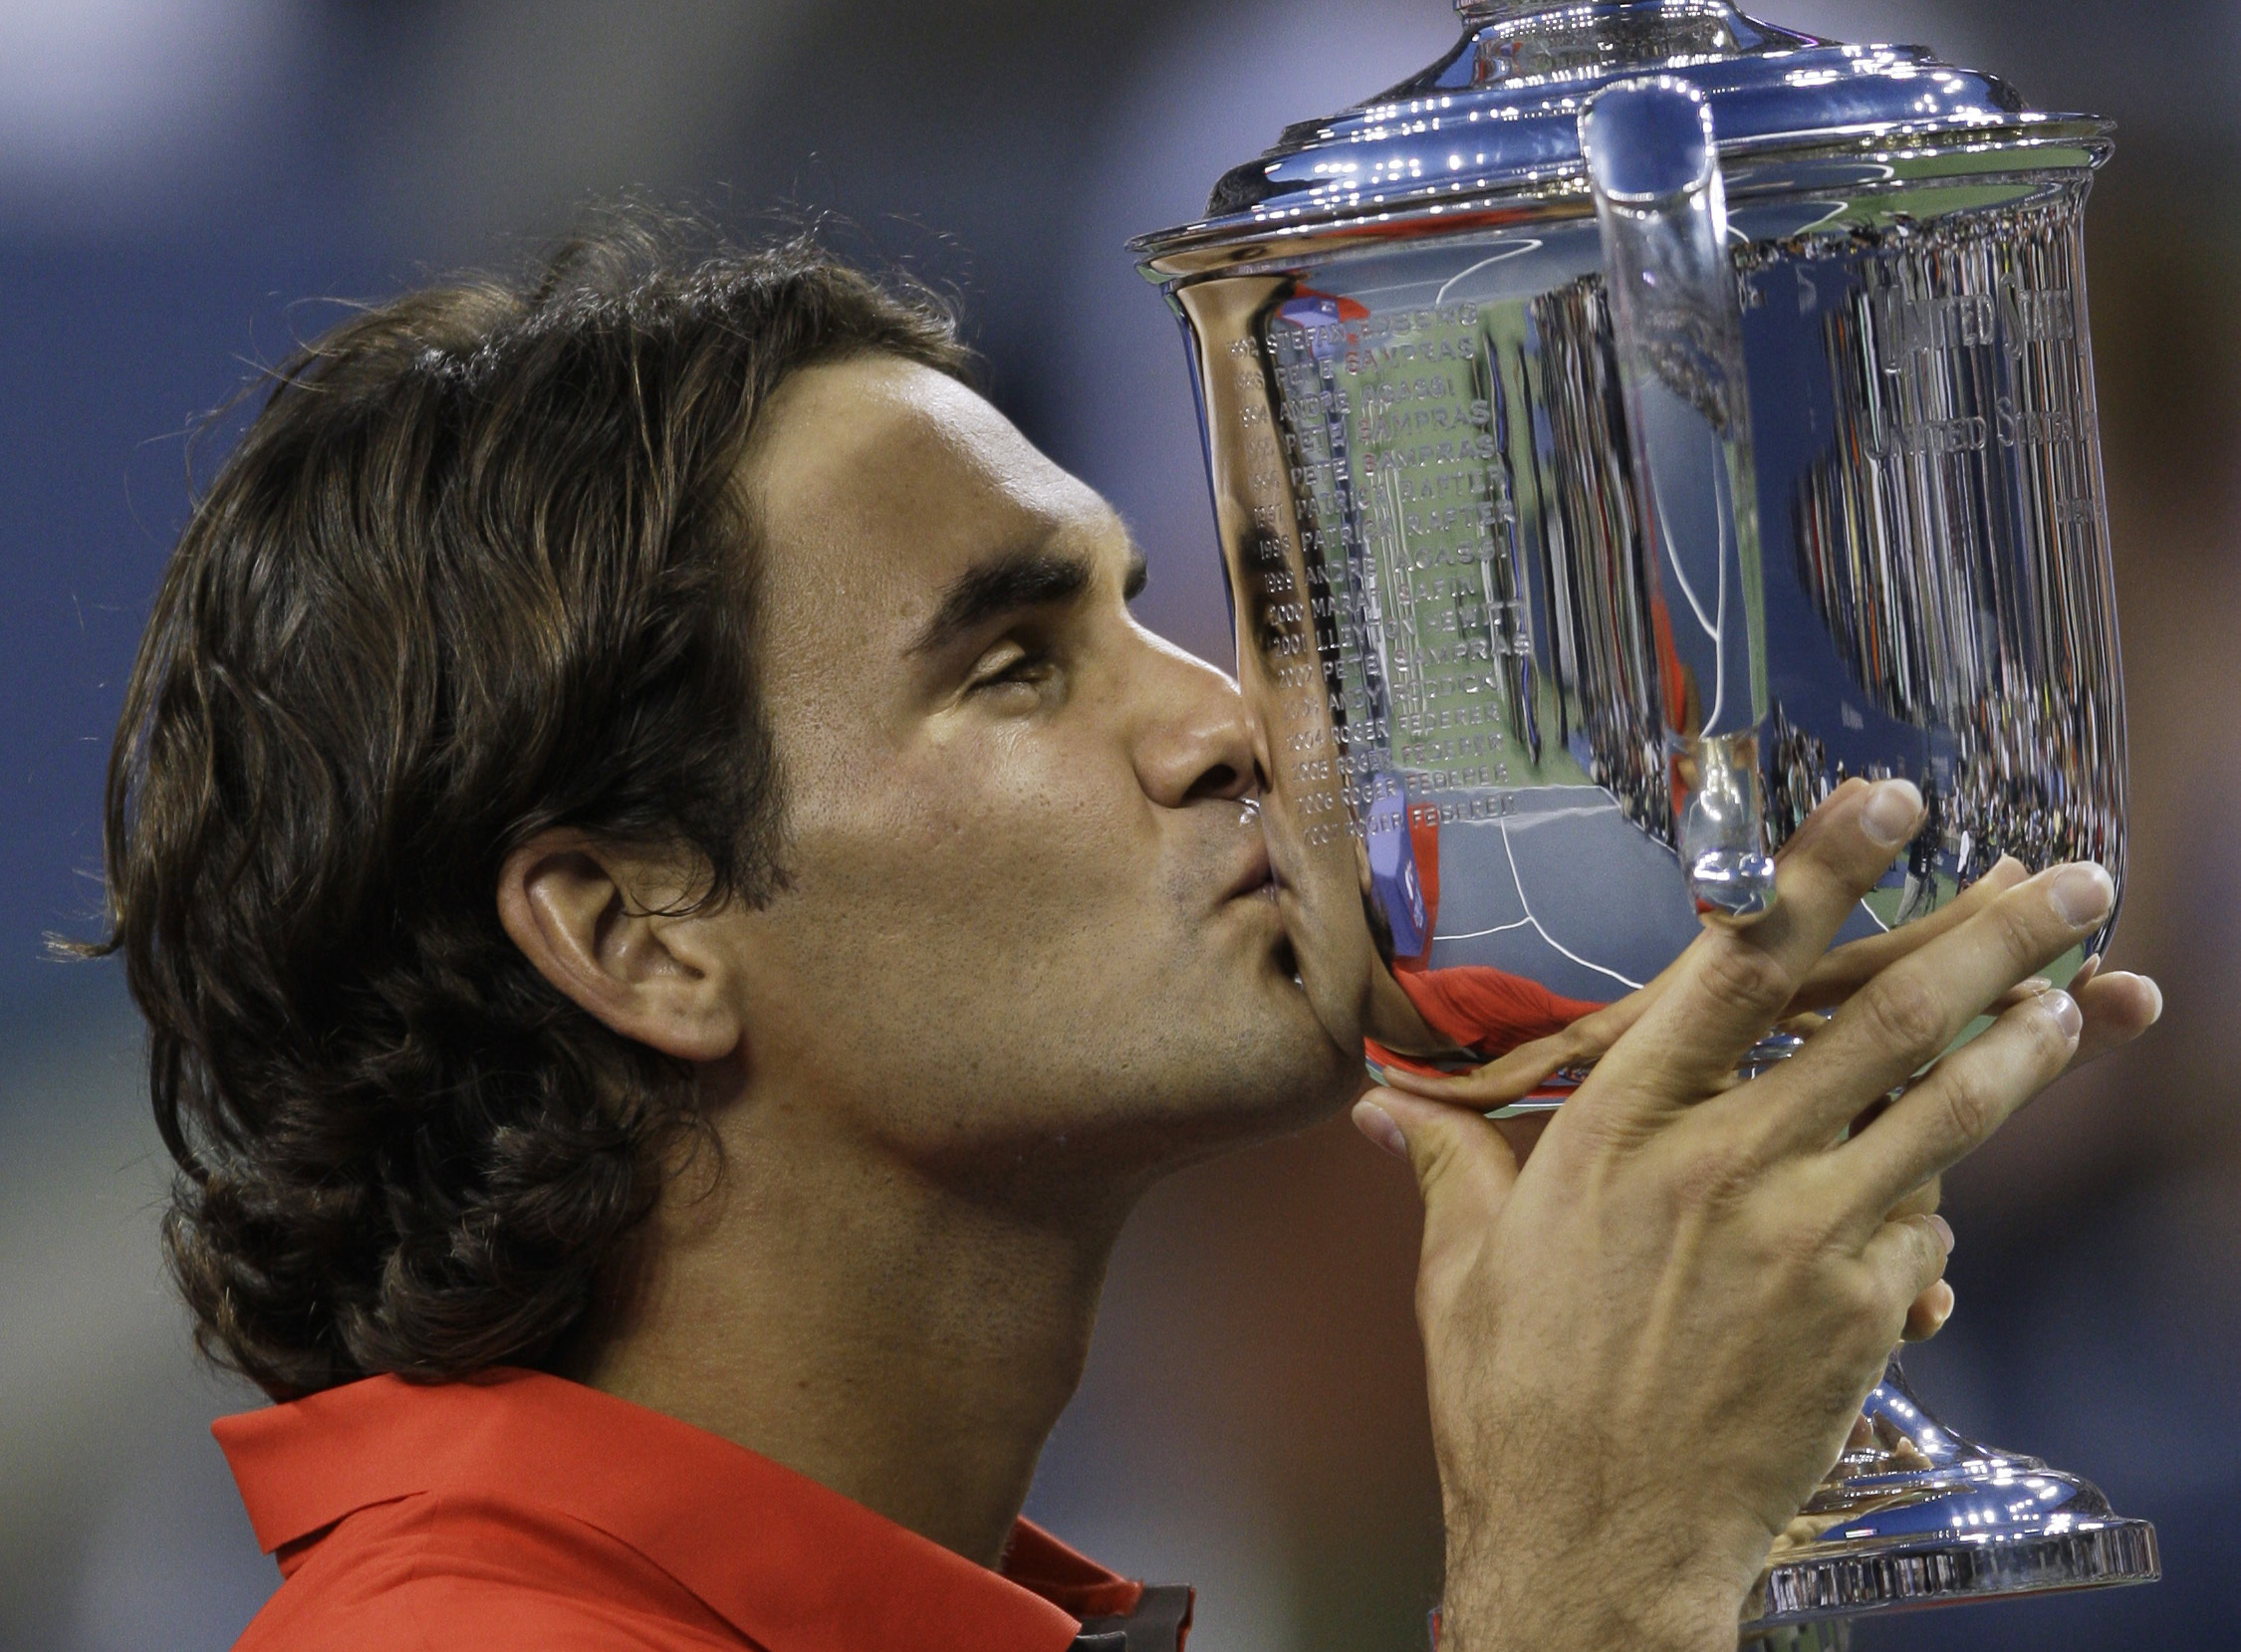 Roger Federer, of Switzerland, kisses the championship trophy after winning the men´s finals championship over Andy Murray, of Britain, at the U.S. Open tennis tournament in New York, Monday, Sept. 8, 2008. (AP Photo/Charles Krupa)